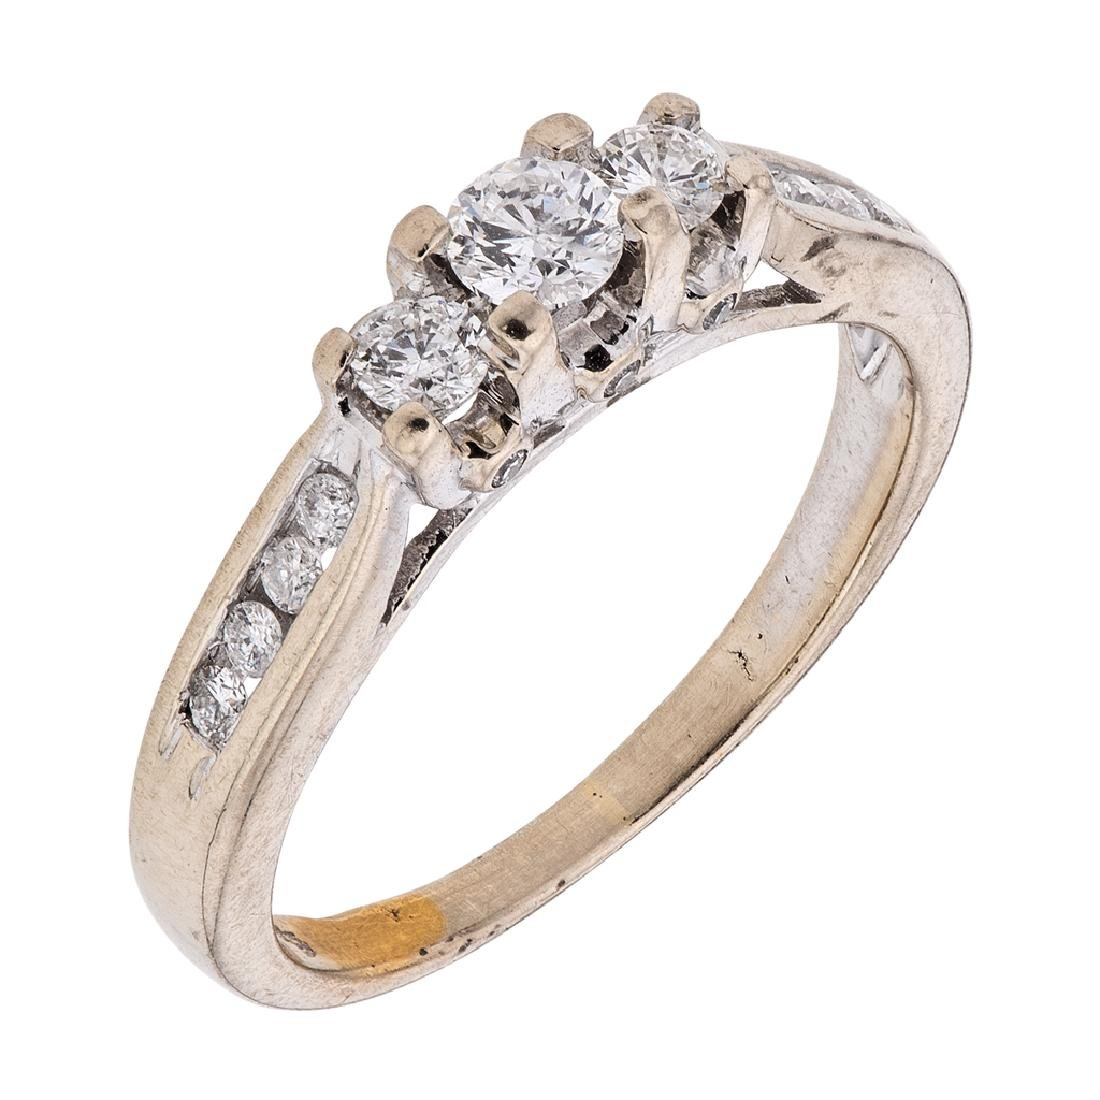 A 14K white gold ring with 17 diamonds ~0.56 carats.